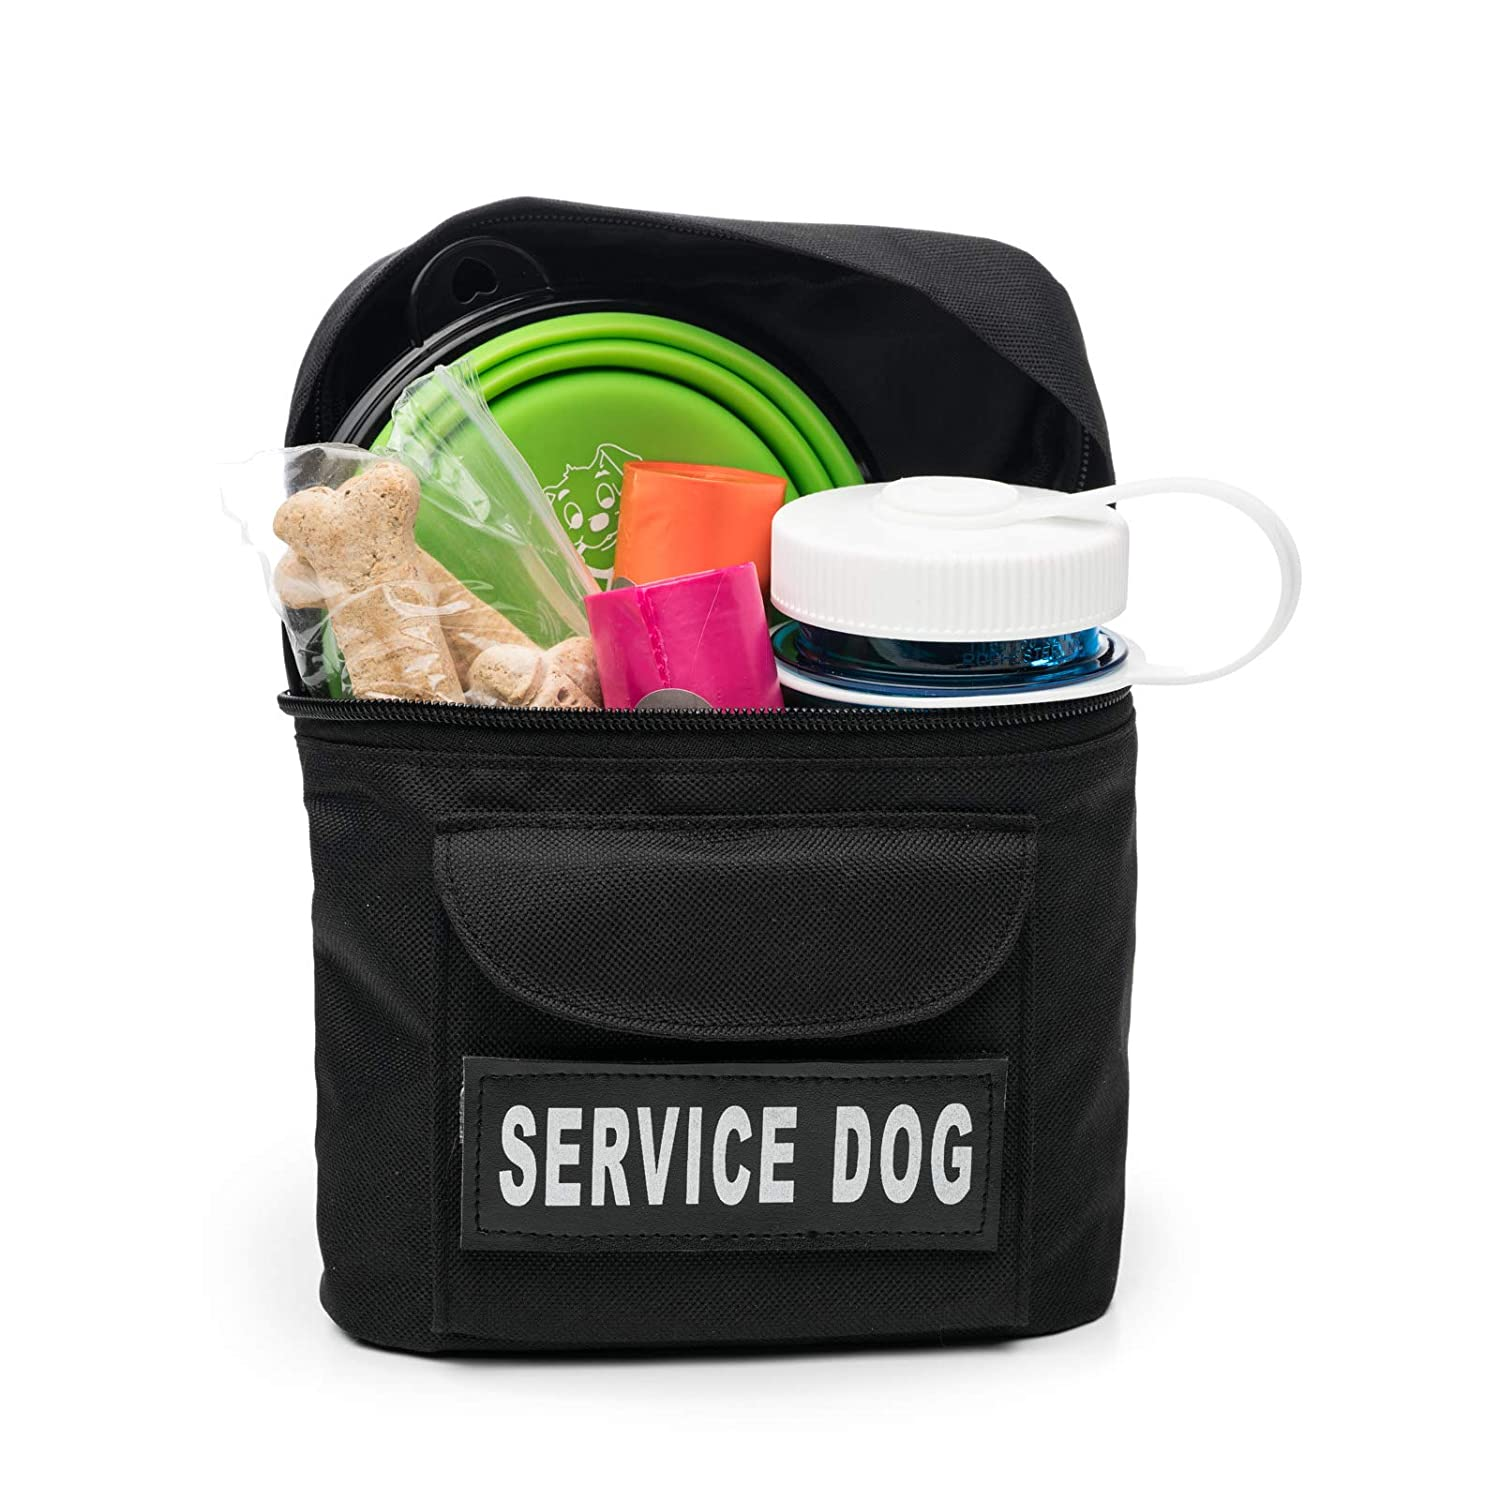 Service Dog Quality Saddlebag for Service Dogs Vests In Training Service Dog In Training Emotional Support Do Not Pet Back Pack Service Dog Vest Harness Saddle Bag BackPack Pouch with Patches